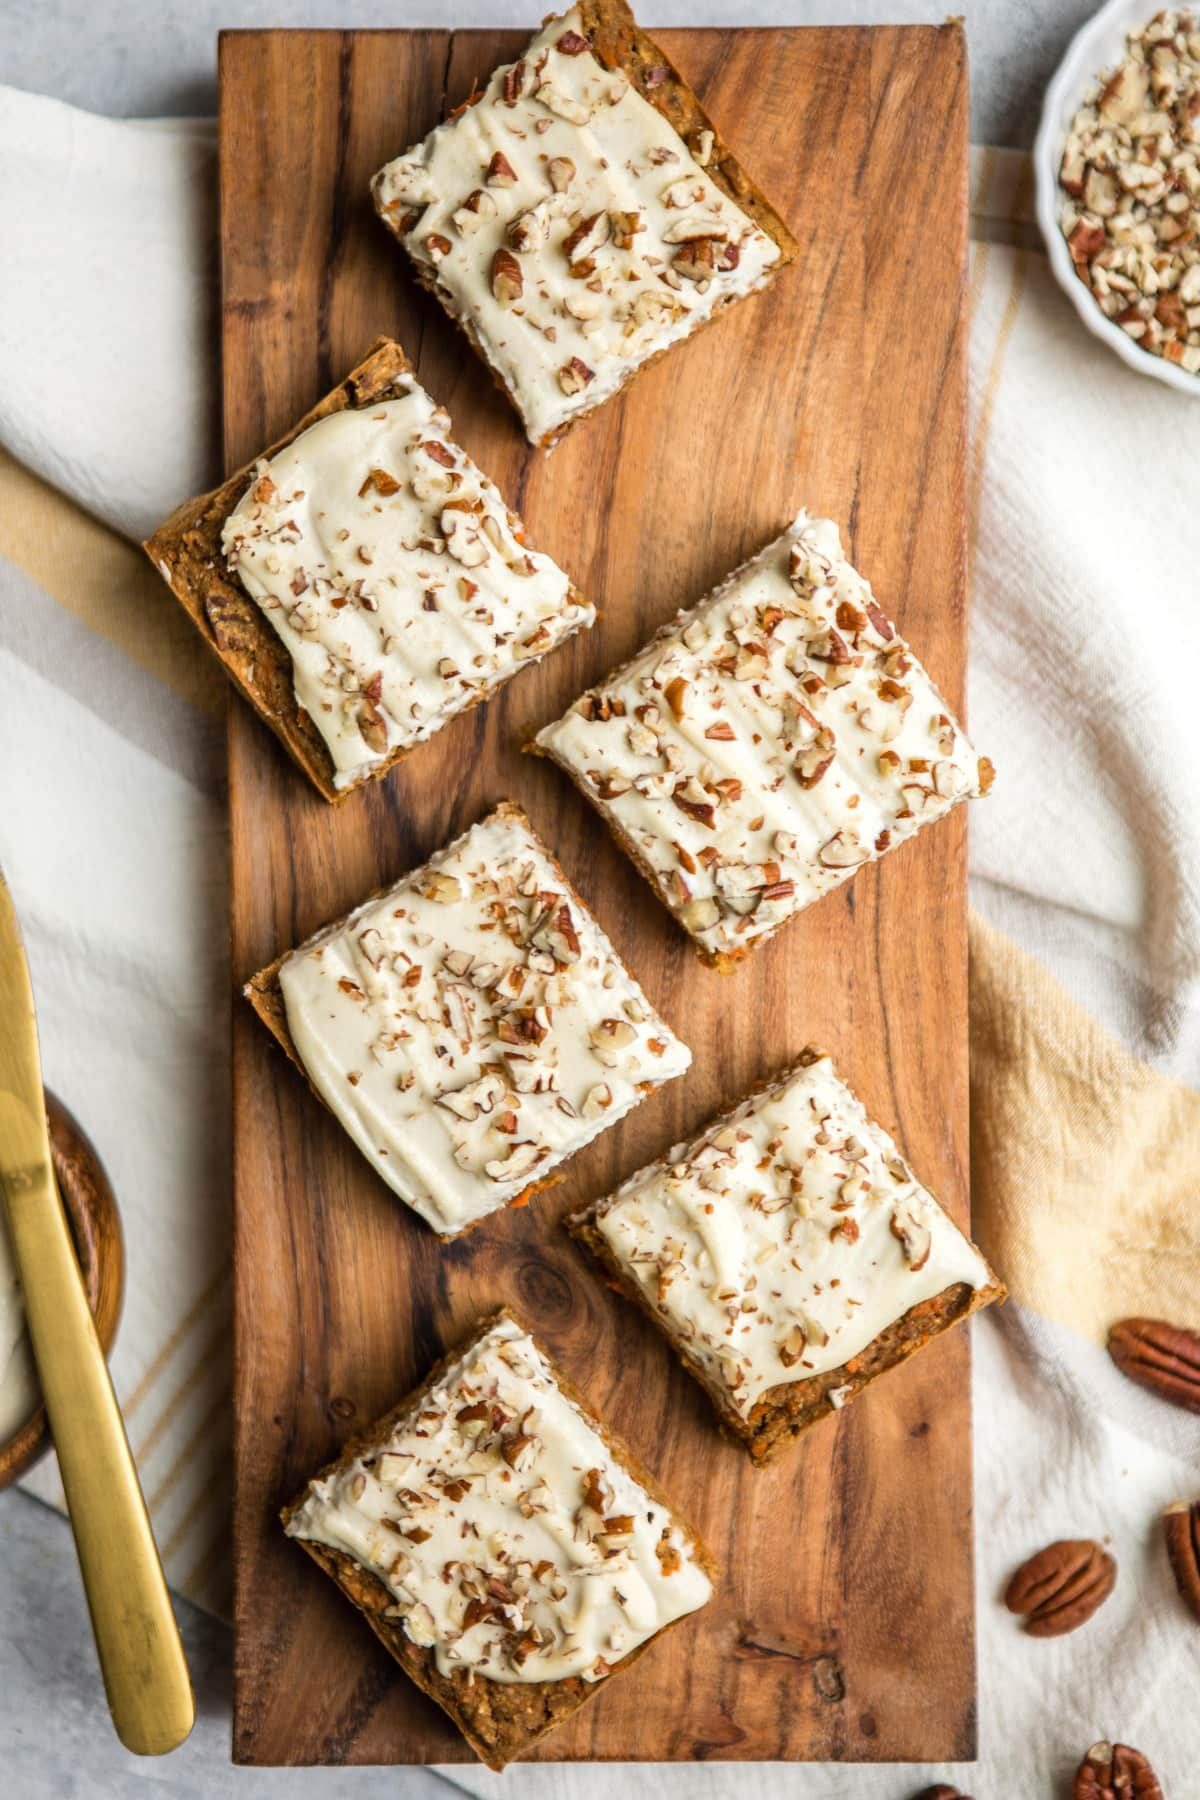 squares of frosted vegan carrot cake on wood serving plank